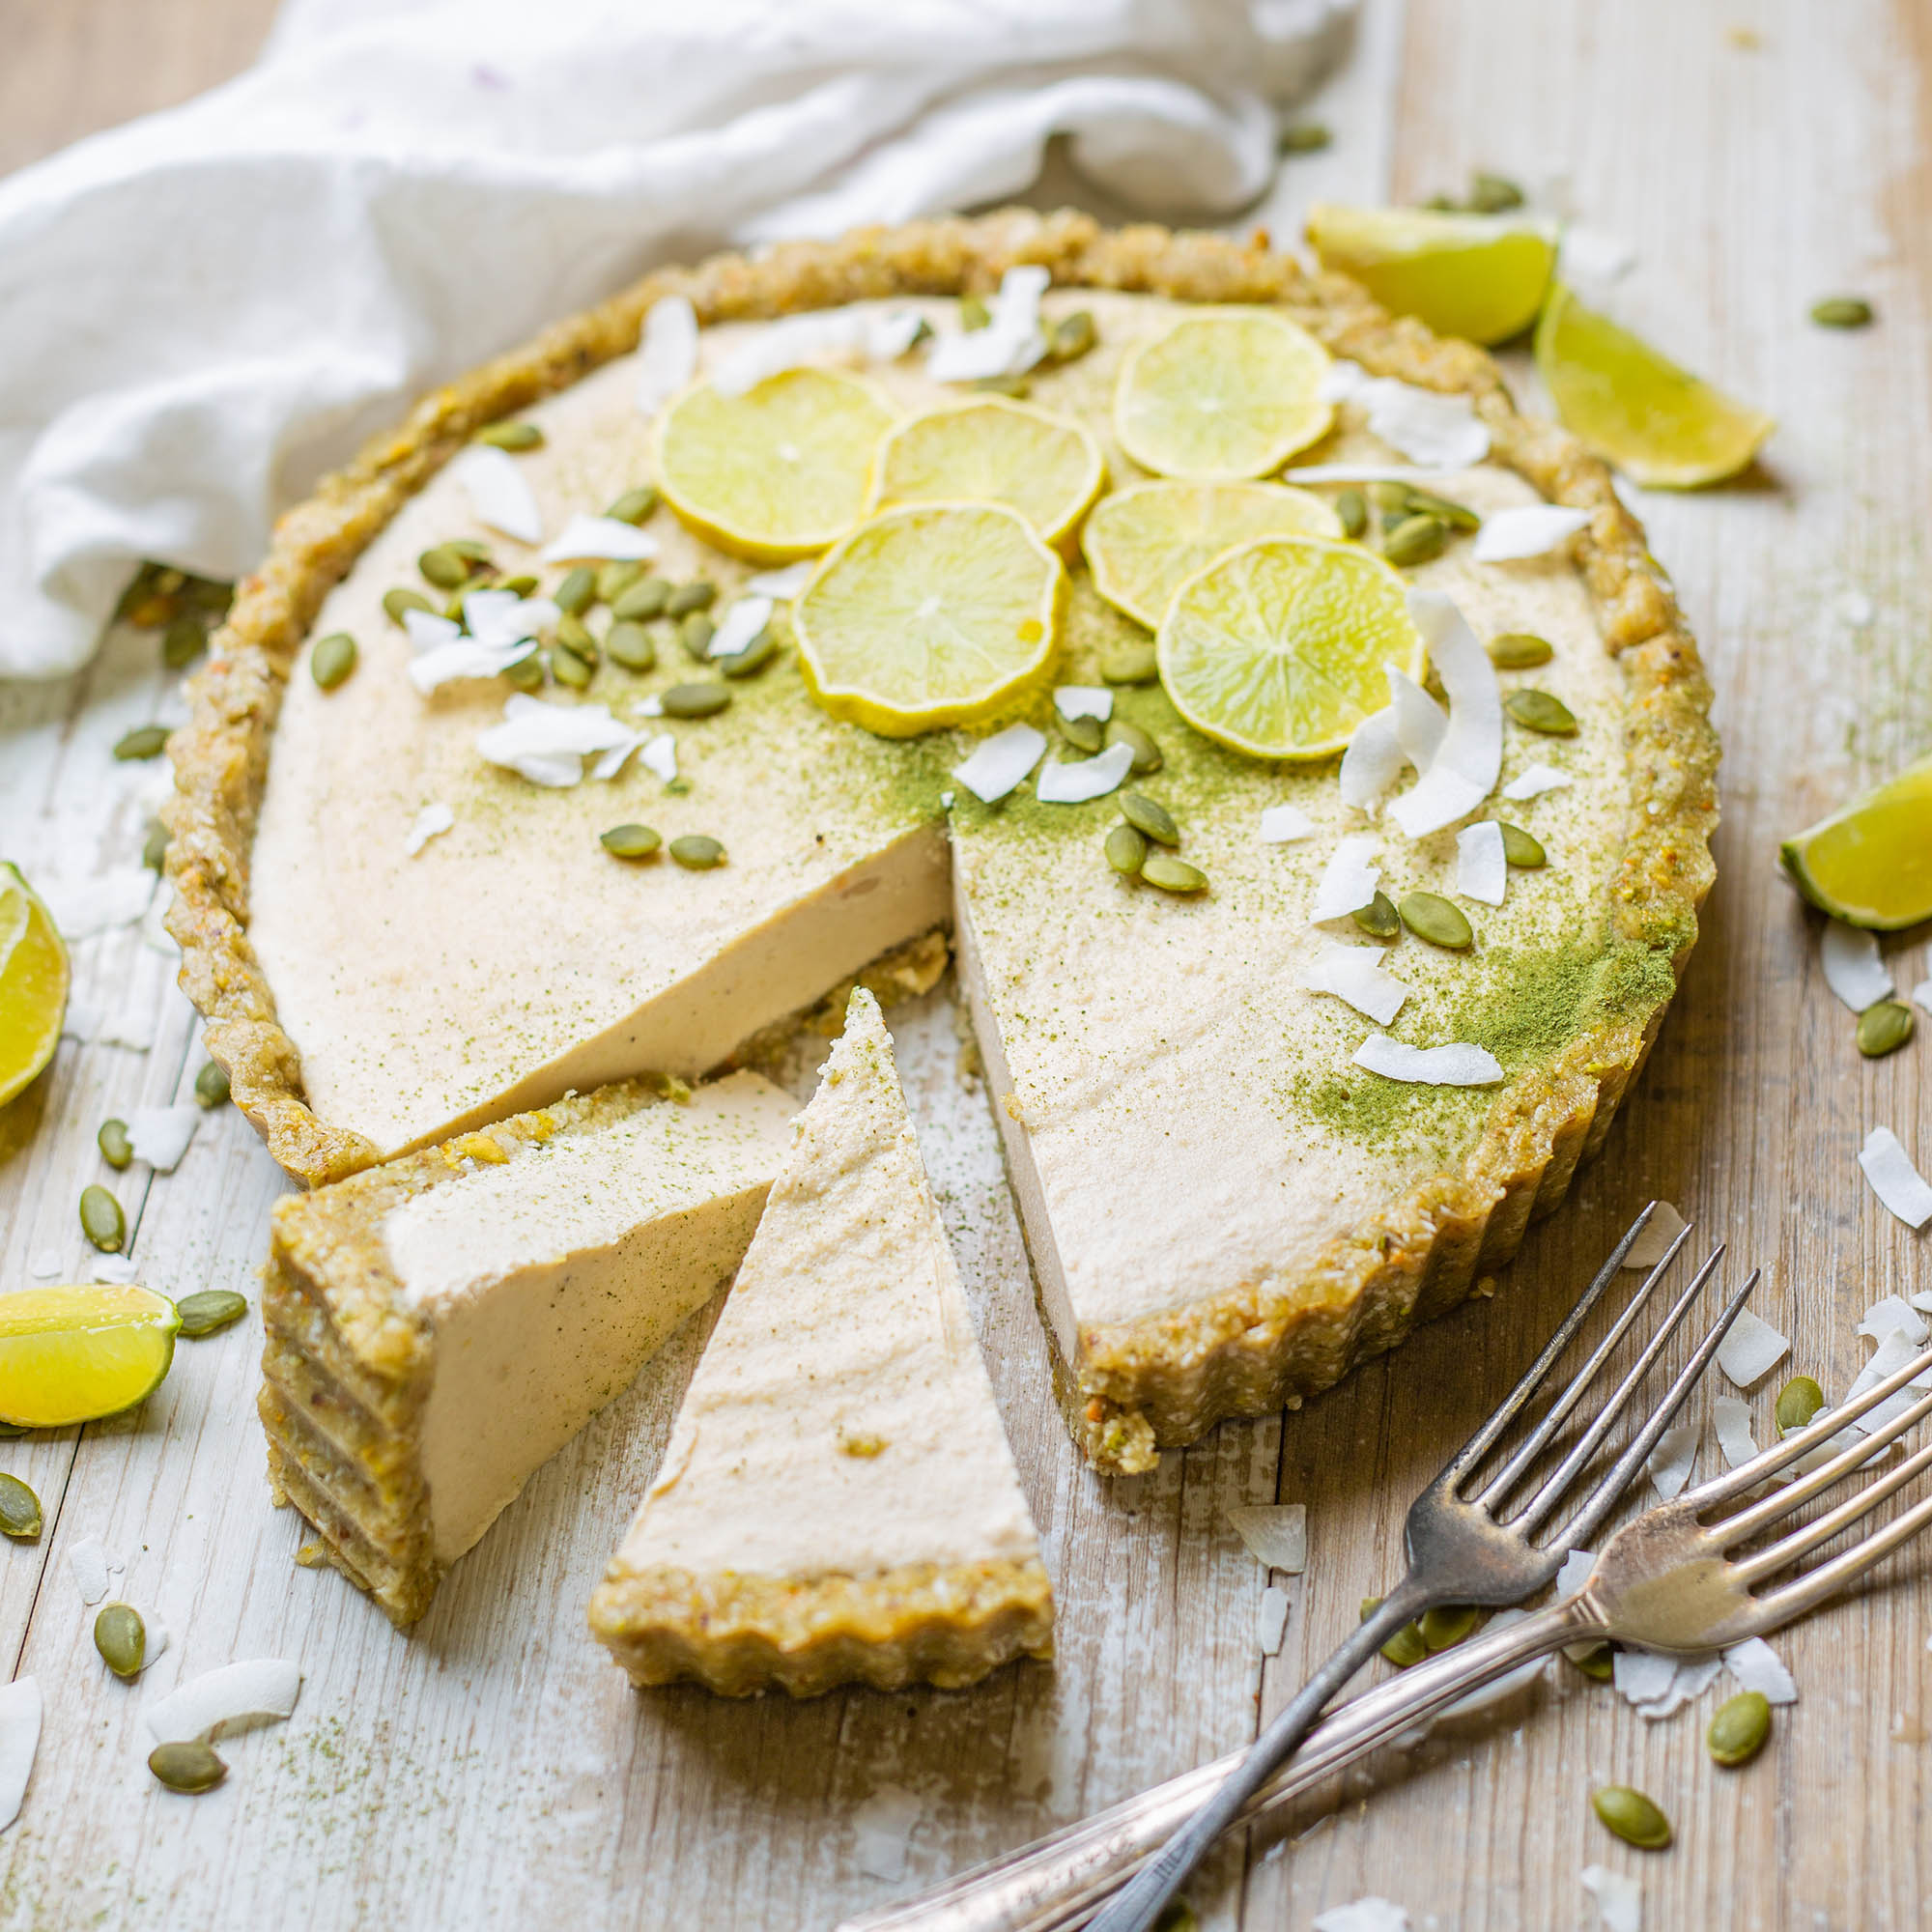 Vegan No Bake Key Lime Pie – No Refined Sugar